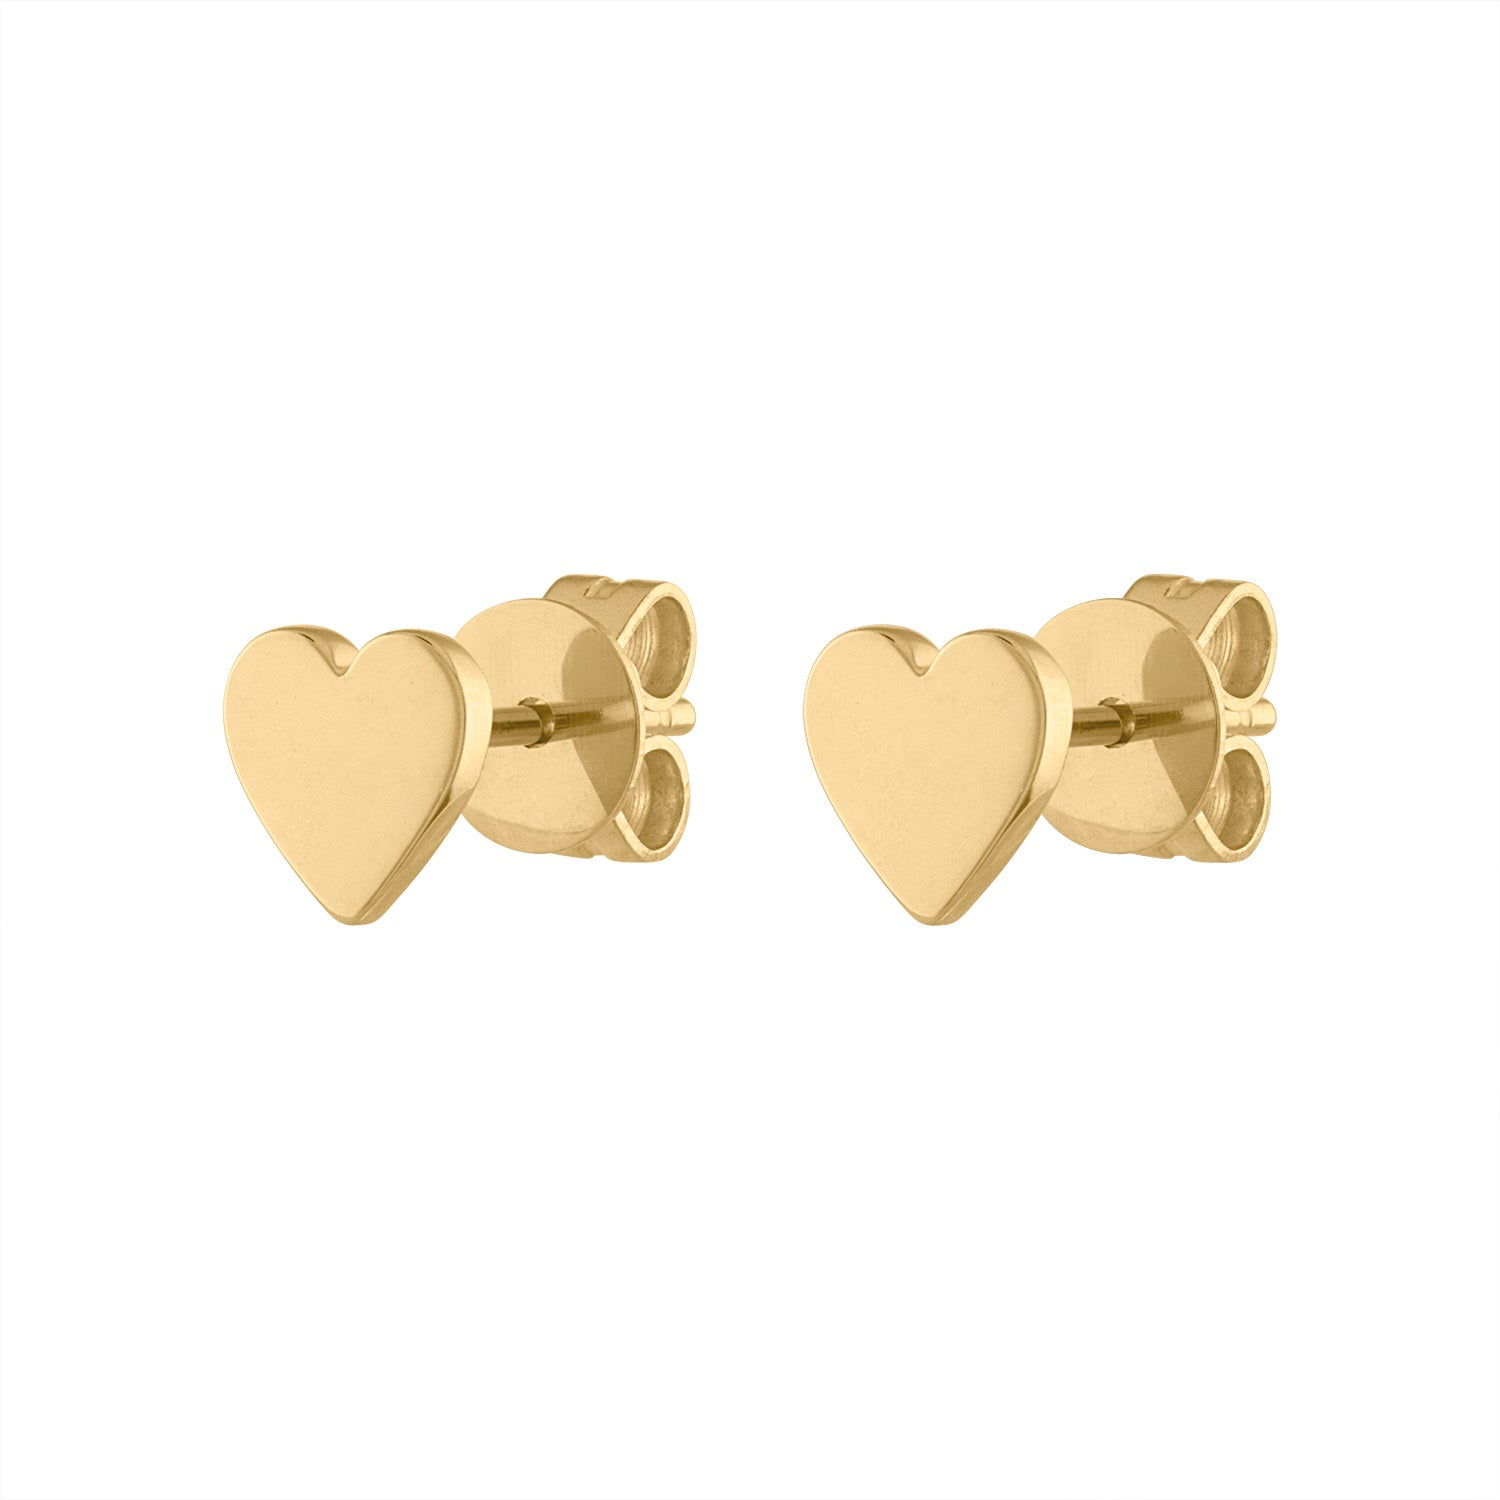 14KT GOLD PLAIN HEART EARRING